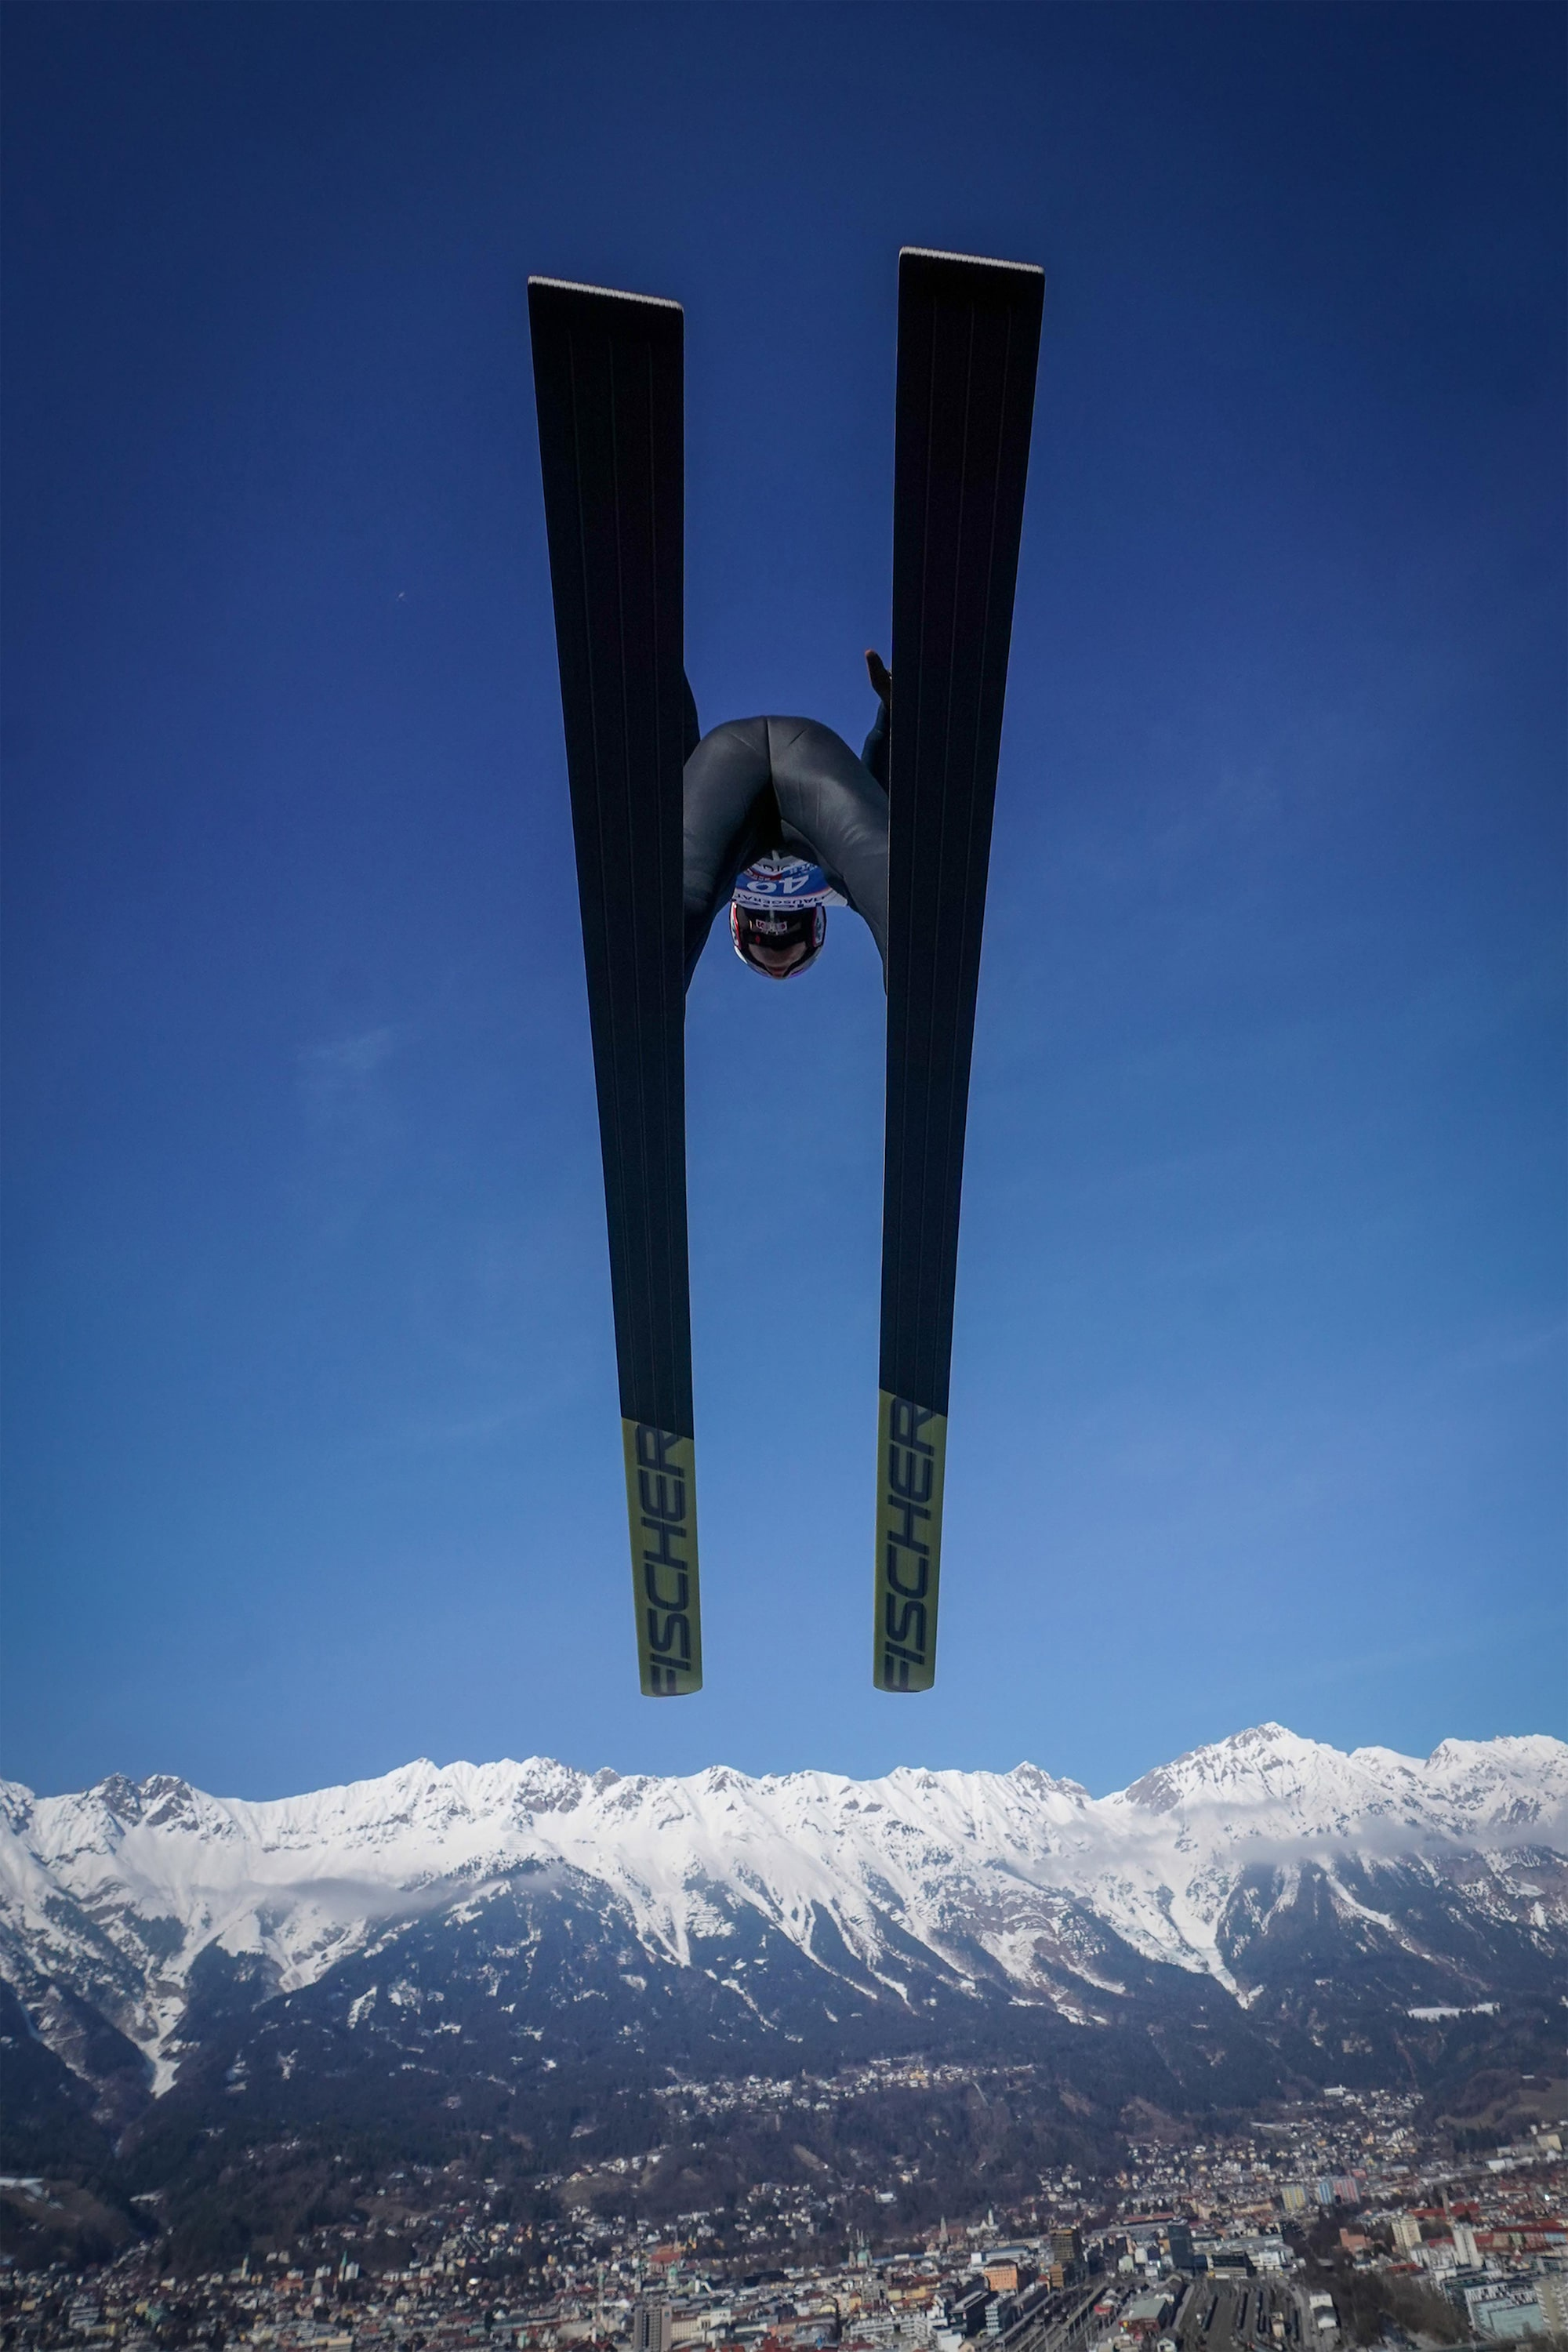 tomasz markowski sony alpha 9 looking up at a ski jumper as he passes overhead against a deep blue sky